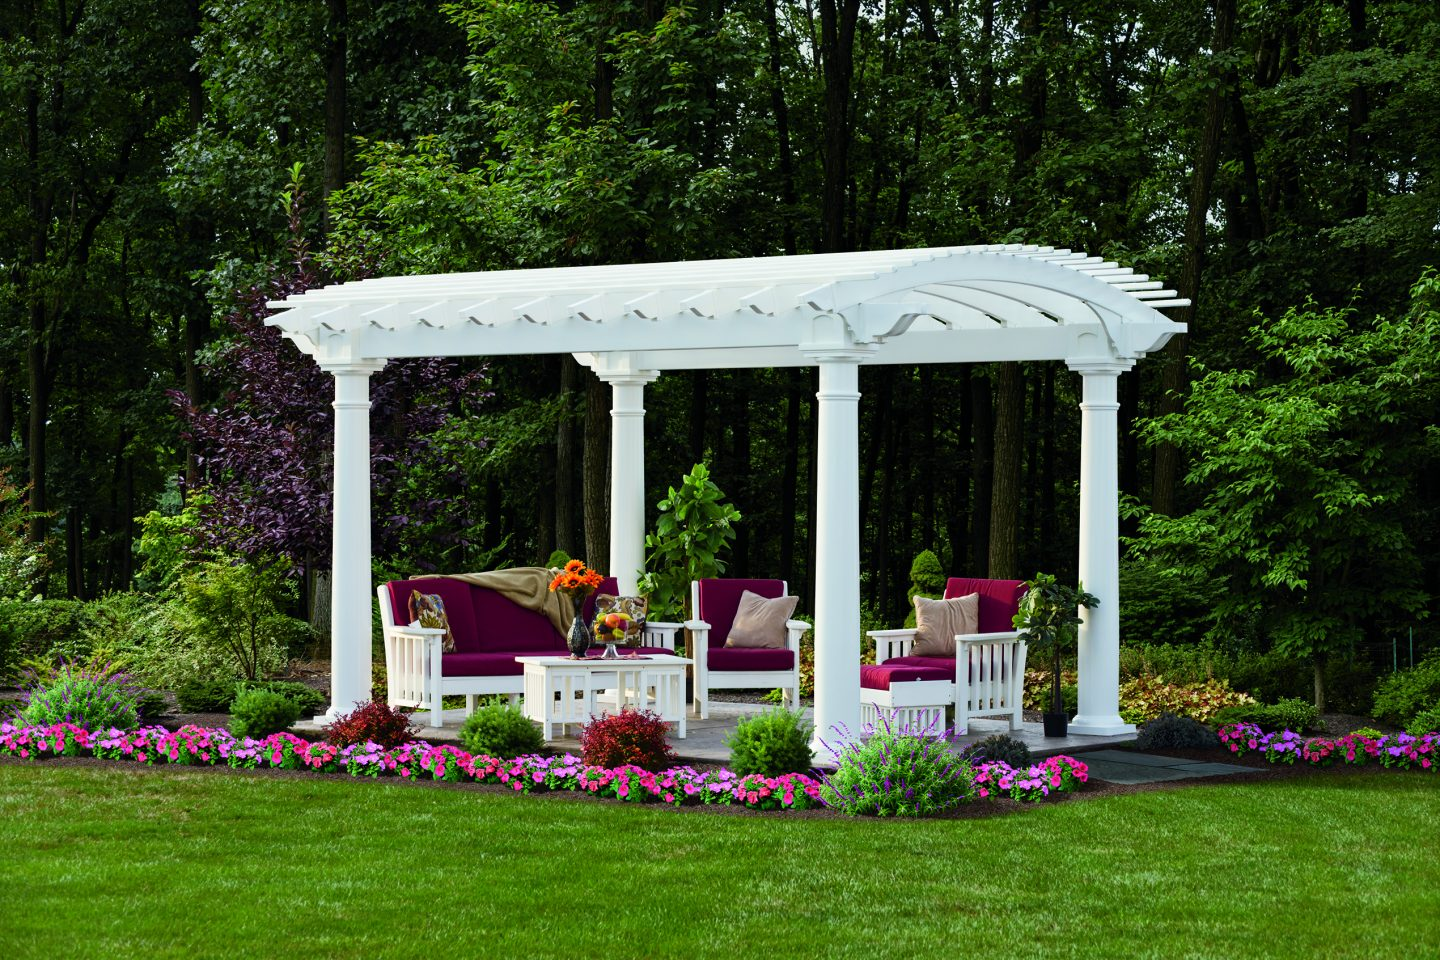 Arcadian Pergola White Vinyl in Backyard Outdoor Living Space